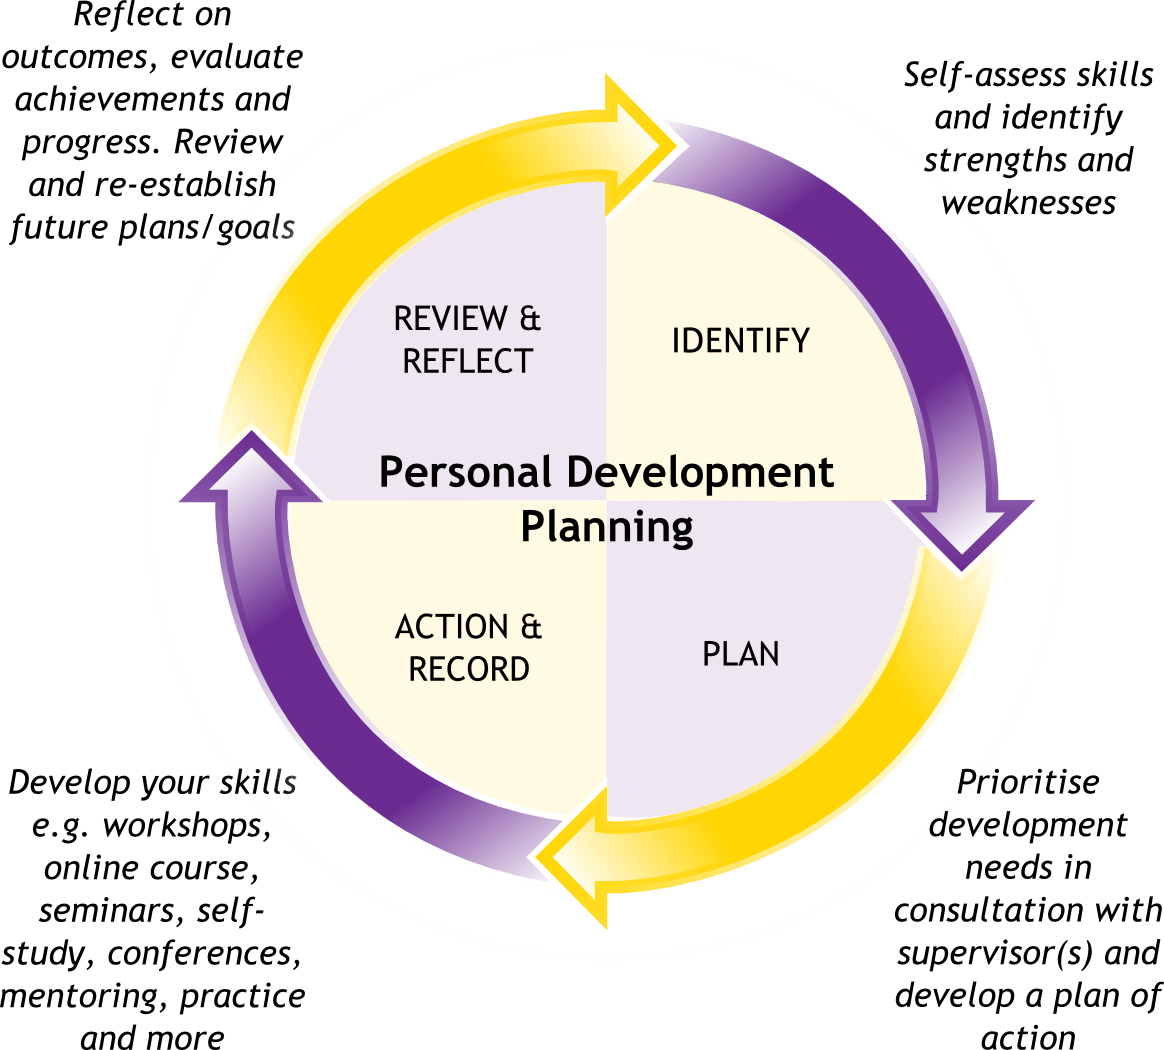 Learn about personal development in this topic from the